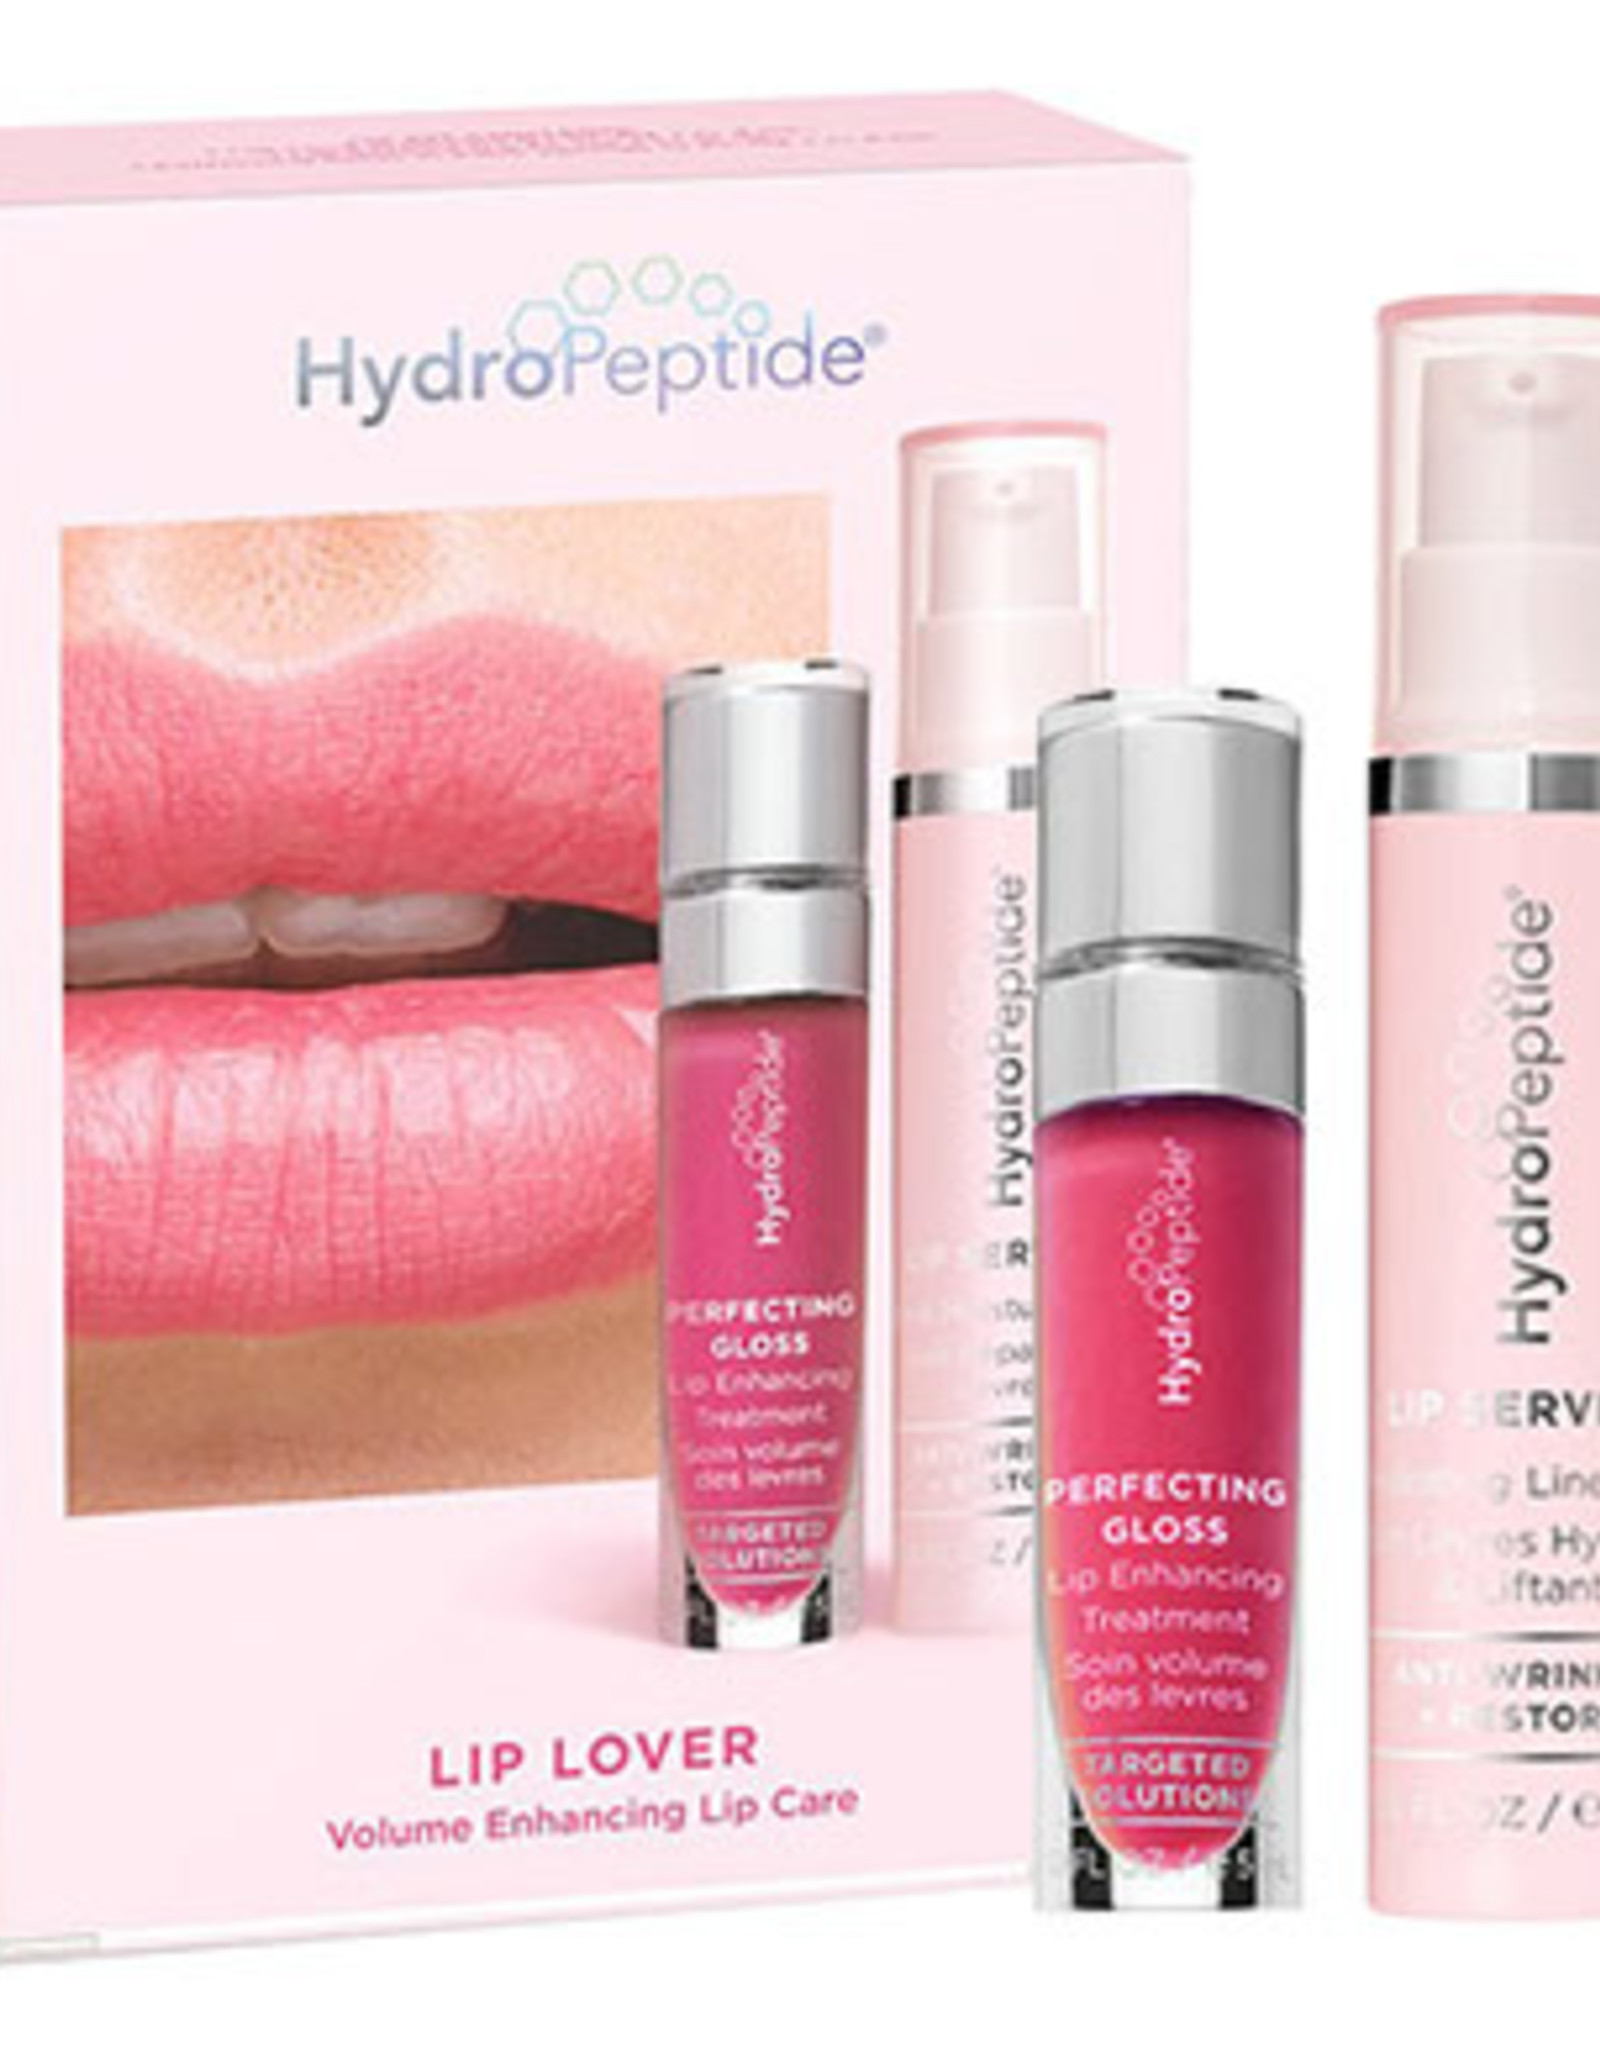 HydroPeptide Lip lover duo